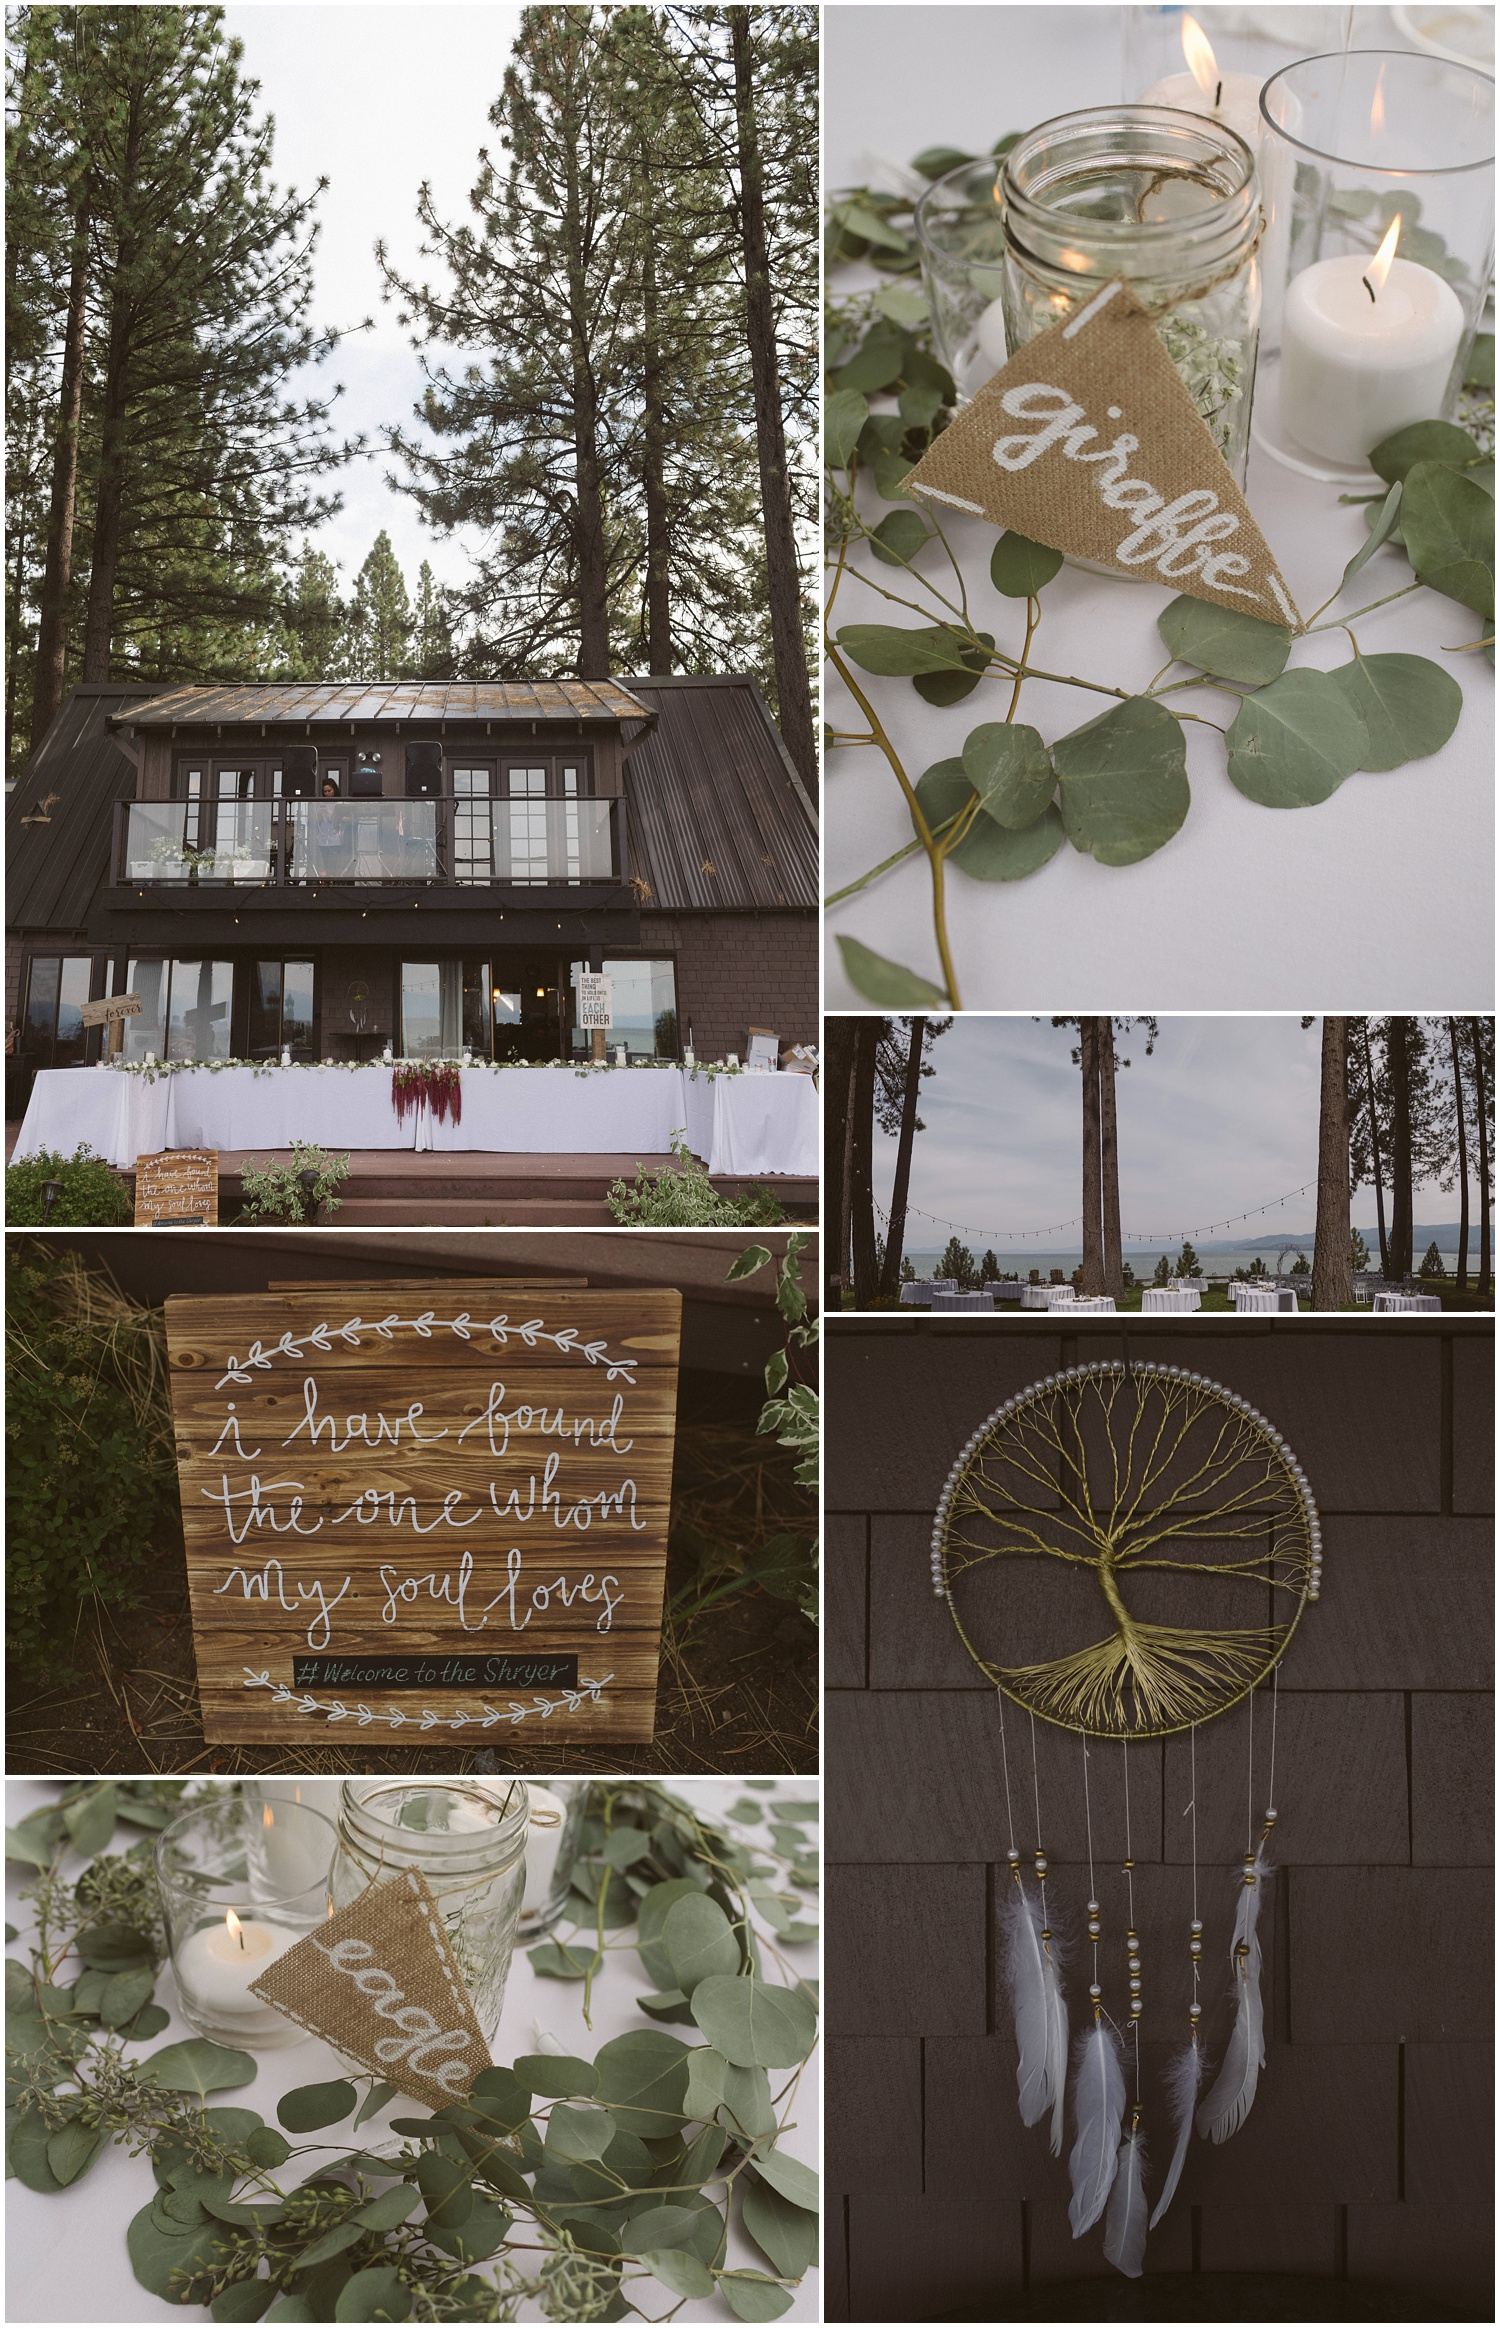 Lindsay and Bret South Lake Tahoe Bohemian Wedding